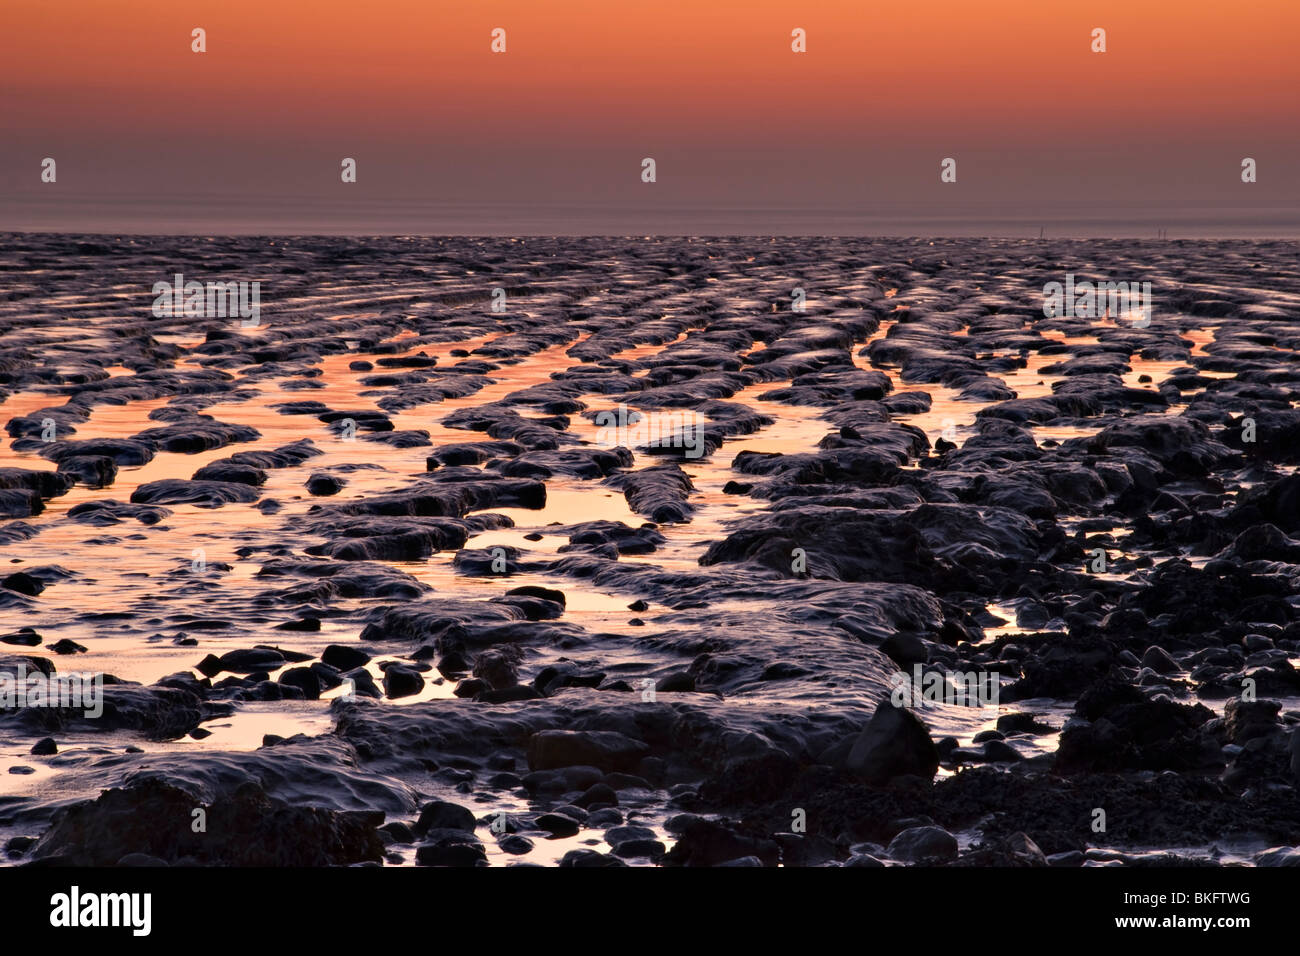 Sunset over the mudflats at Sandpoint, near Weston Super Mare, England - Stock Image